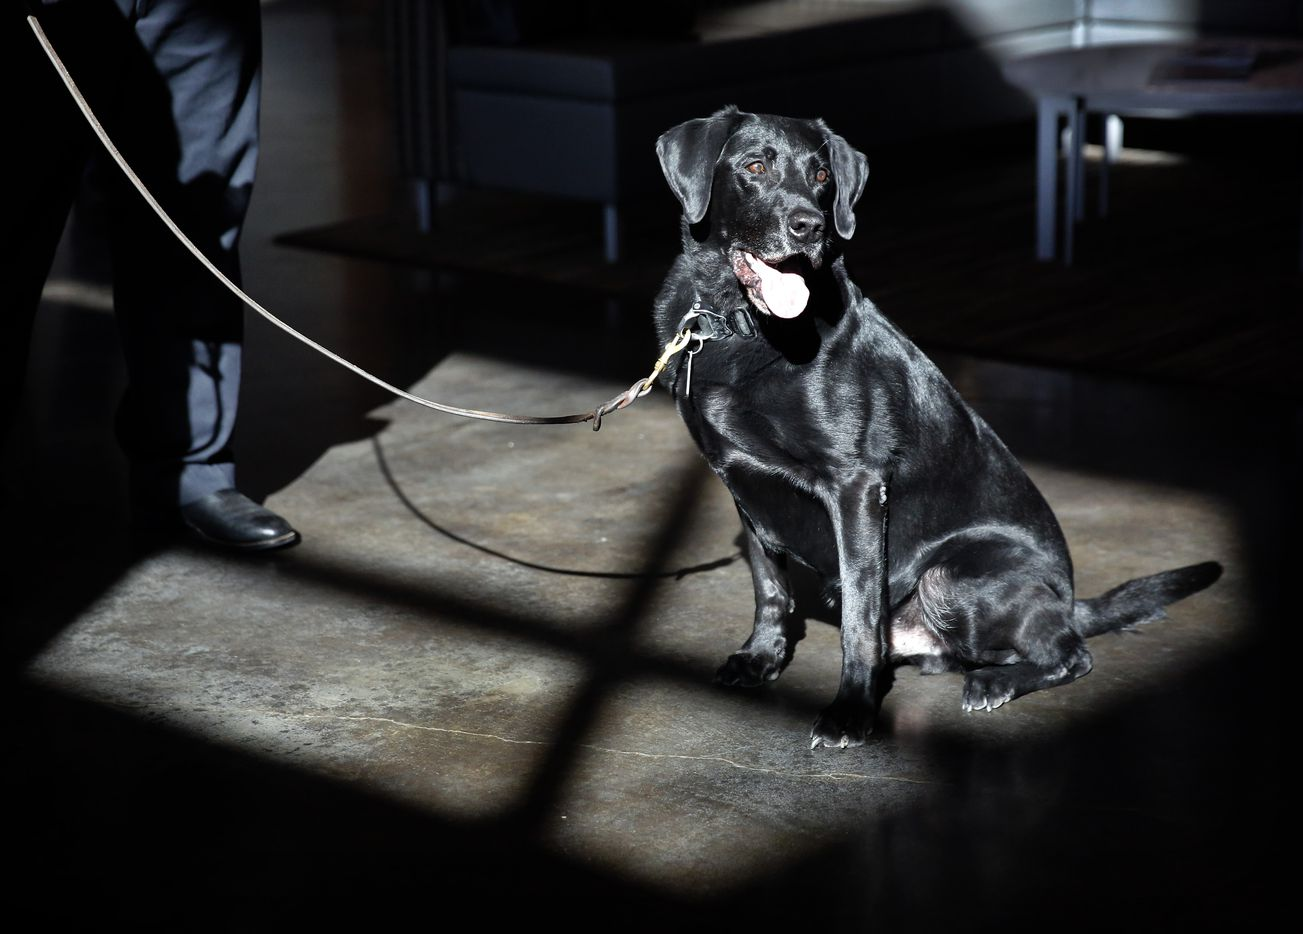 Fort Worth Fire Department's explosive detection K-9, Quigley, was retired Wednesday, January 23, 2019 from the Explosives Detection Unit. His 3 yr-old replacement, Barkevious, was also introduced at the Bob Bolen Public Safety Complex in Fort Worth. Barkevious is the eighth service dog they've had since starting the program in 2011.